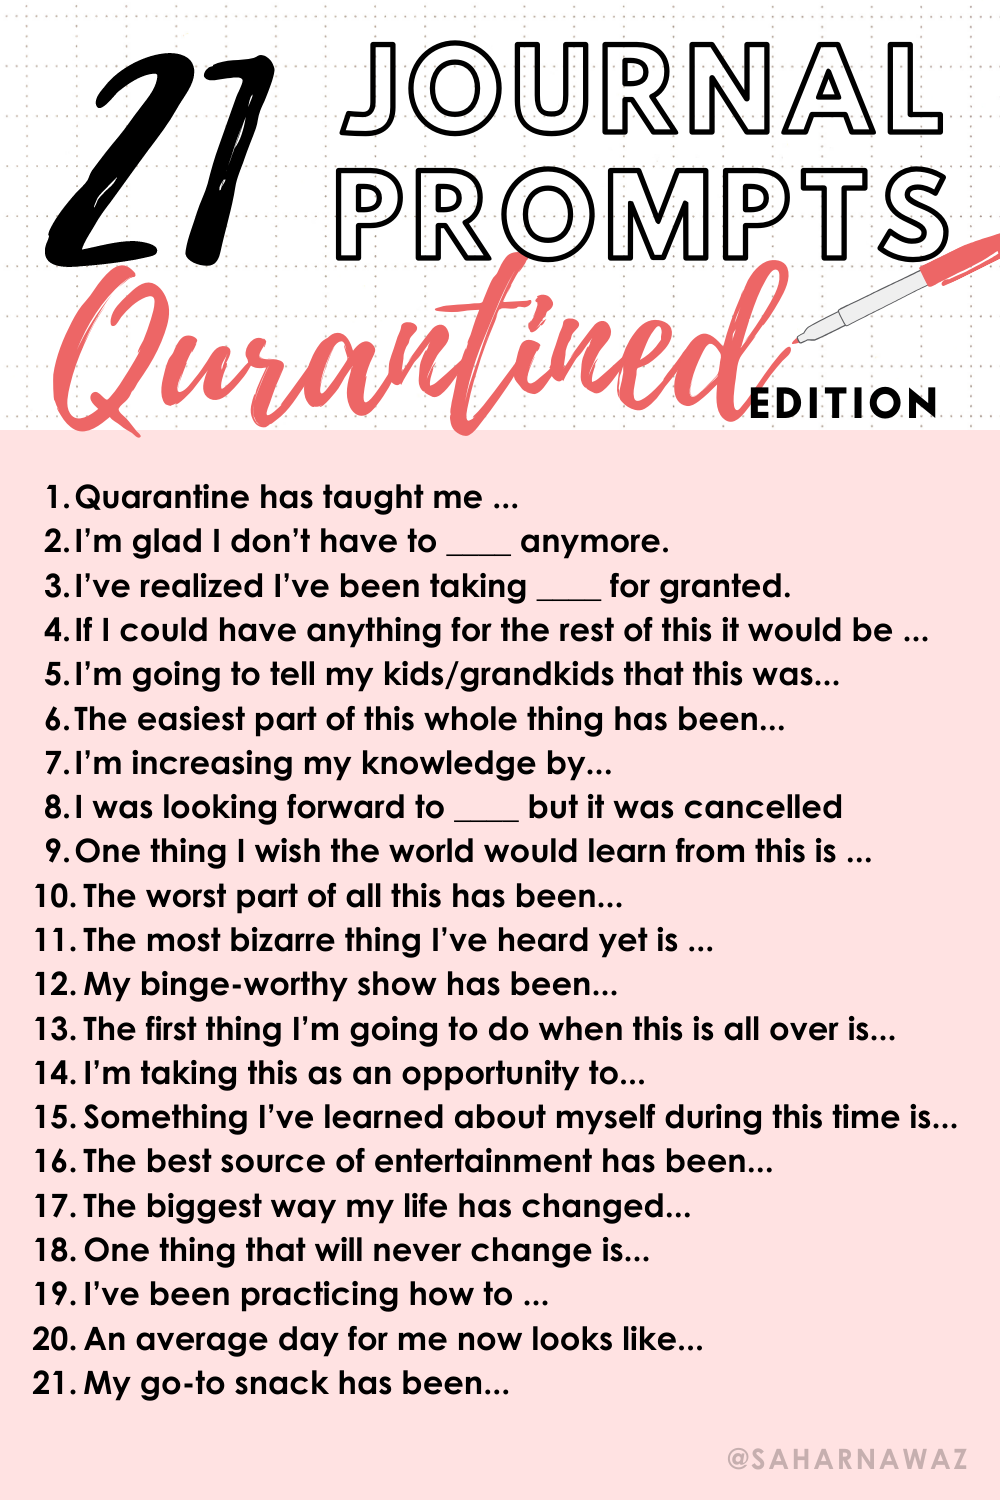 21 Journal Prompts -Quarantined Edition 21 Journal